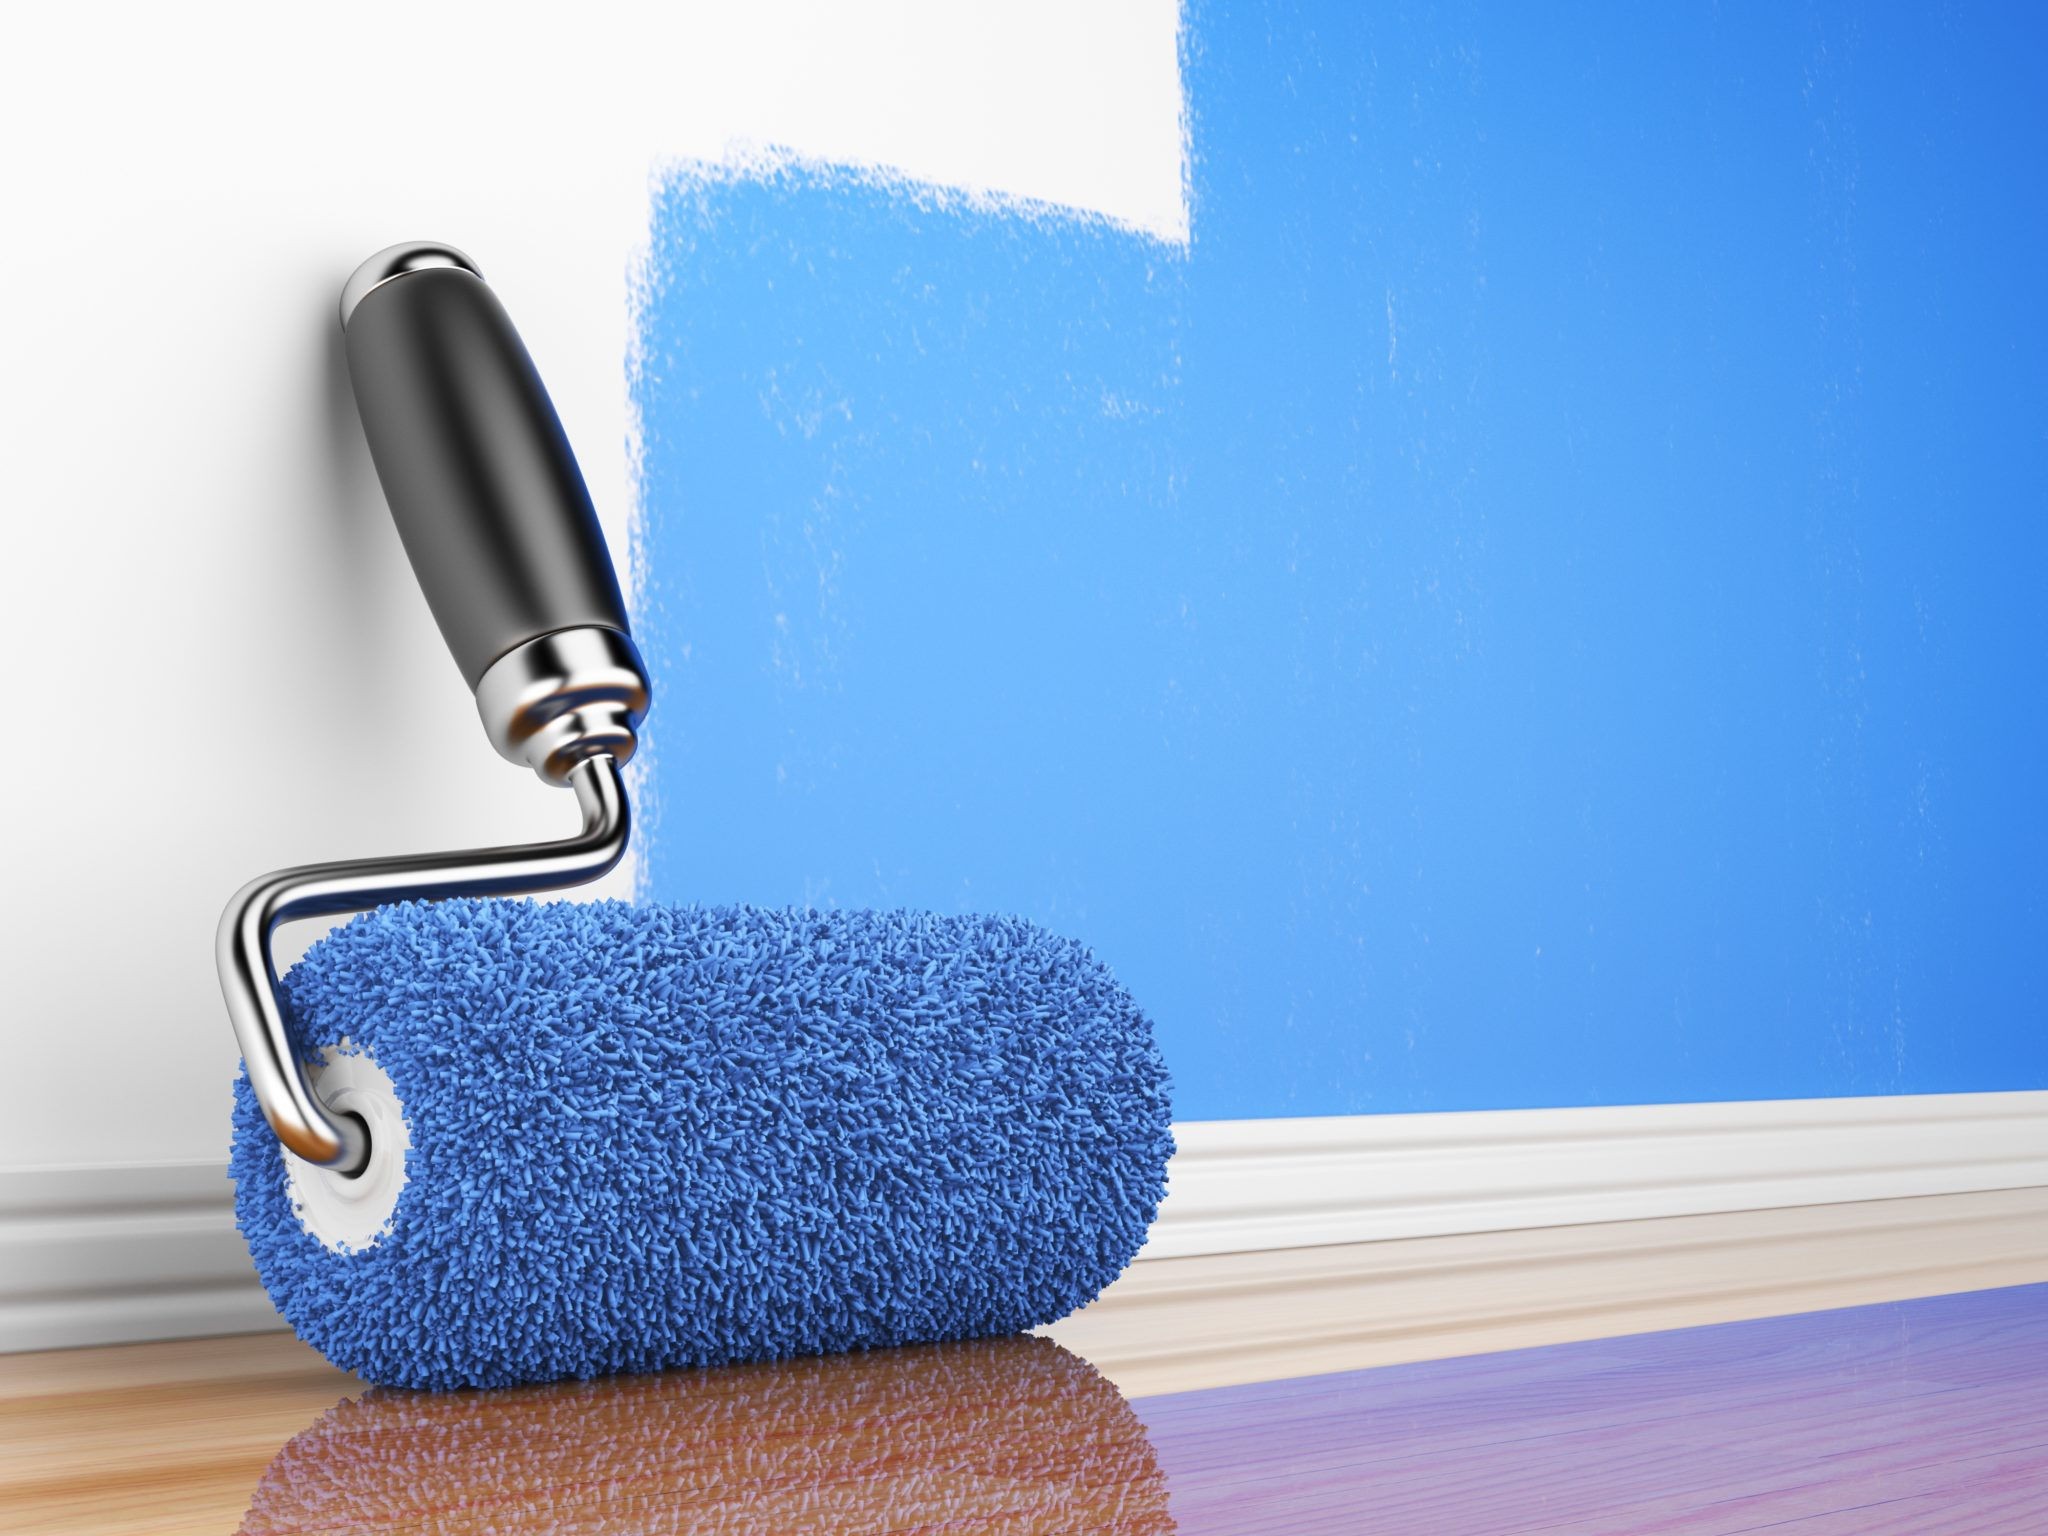 Paint roller on wall